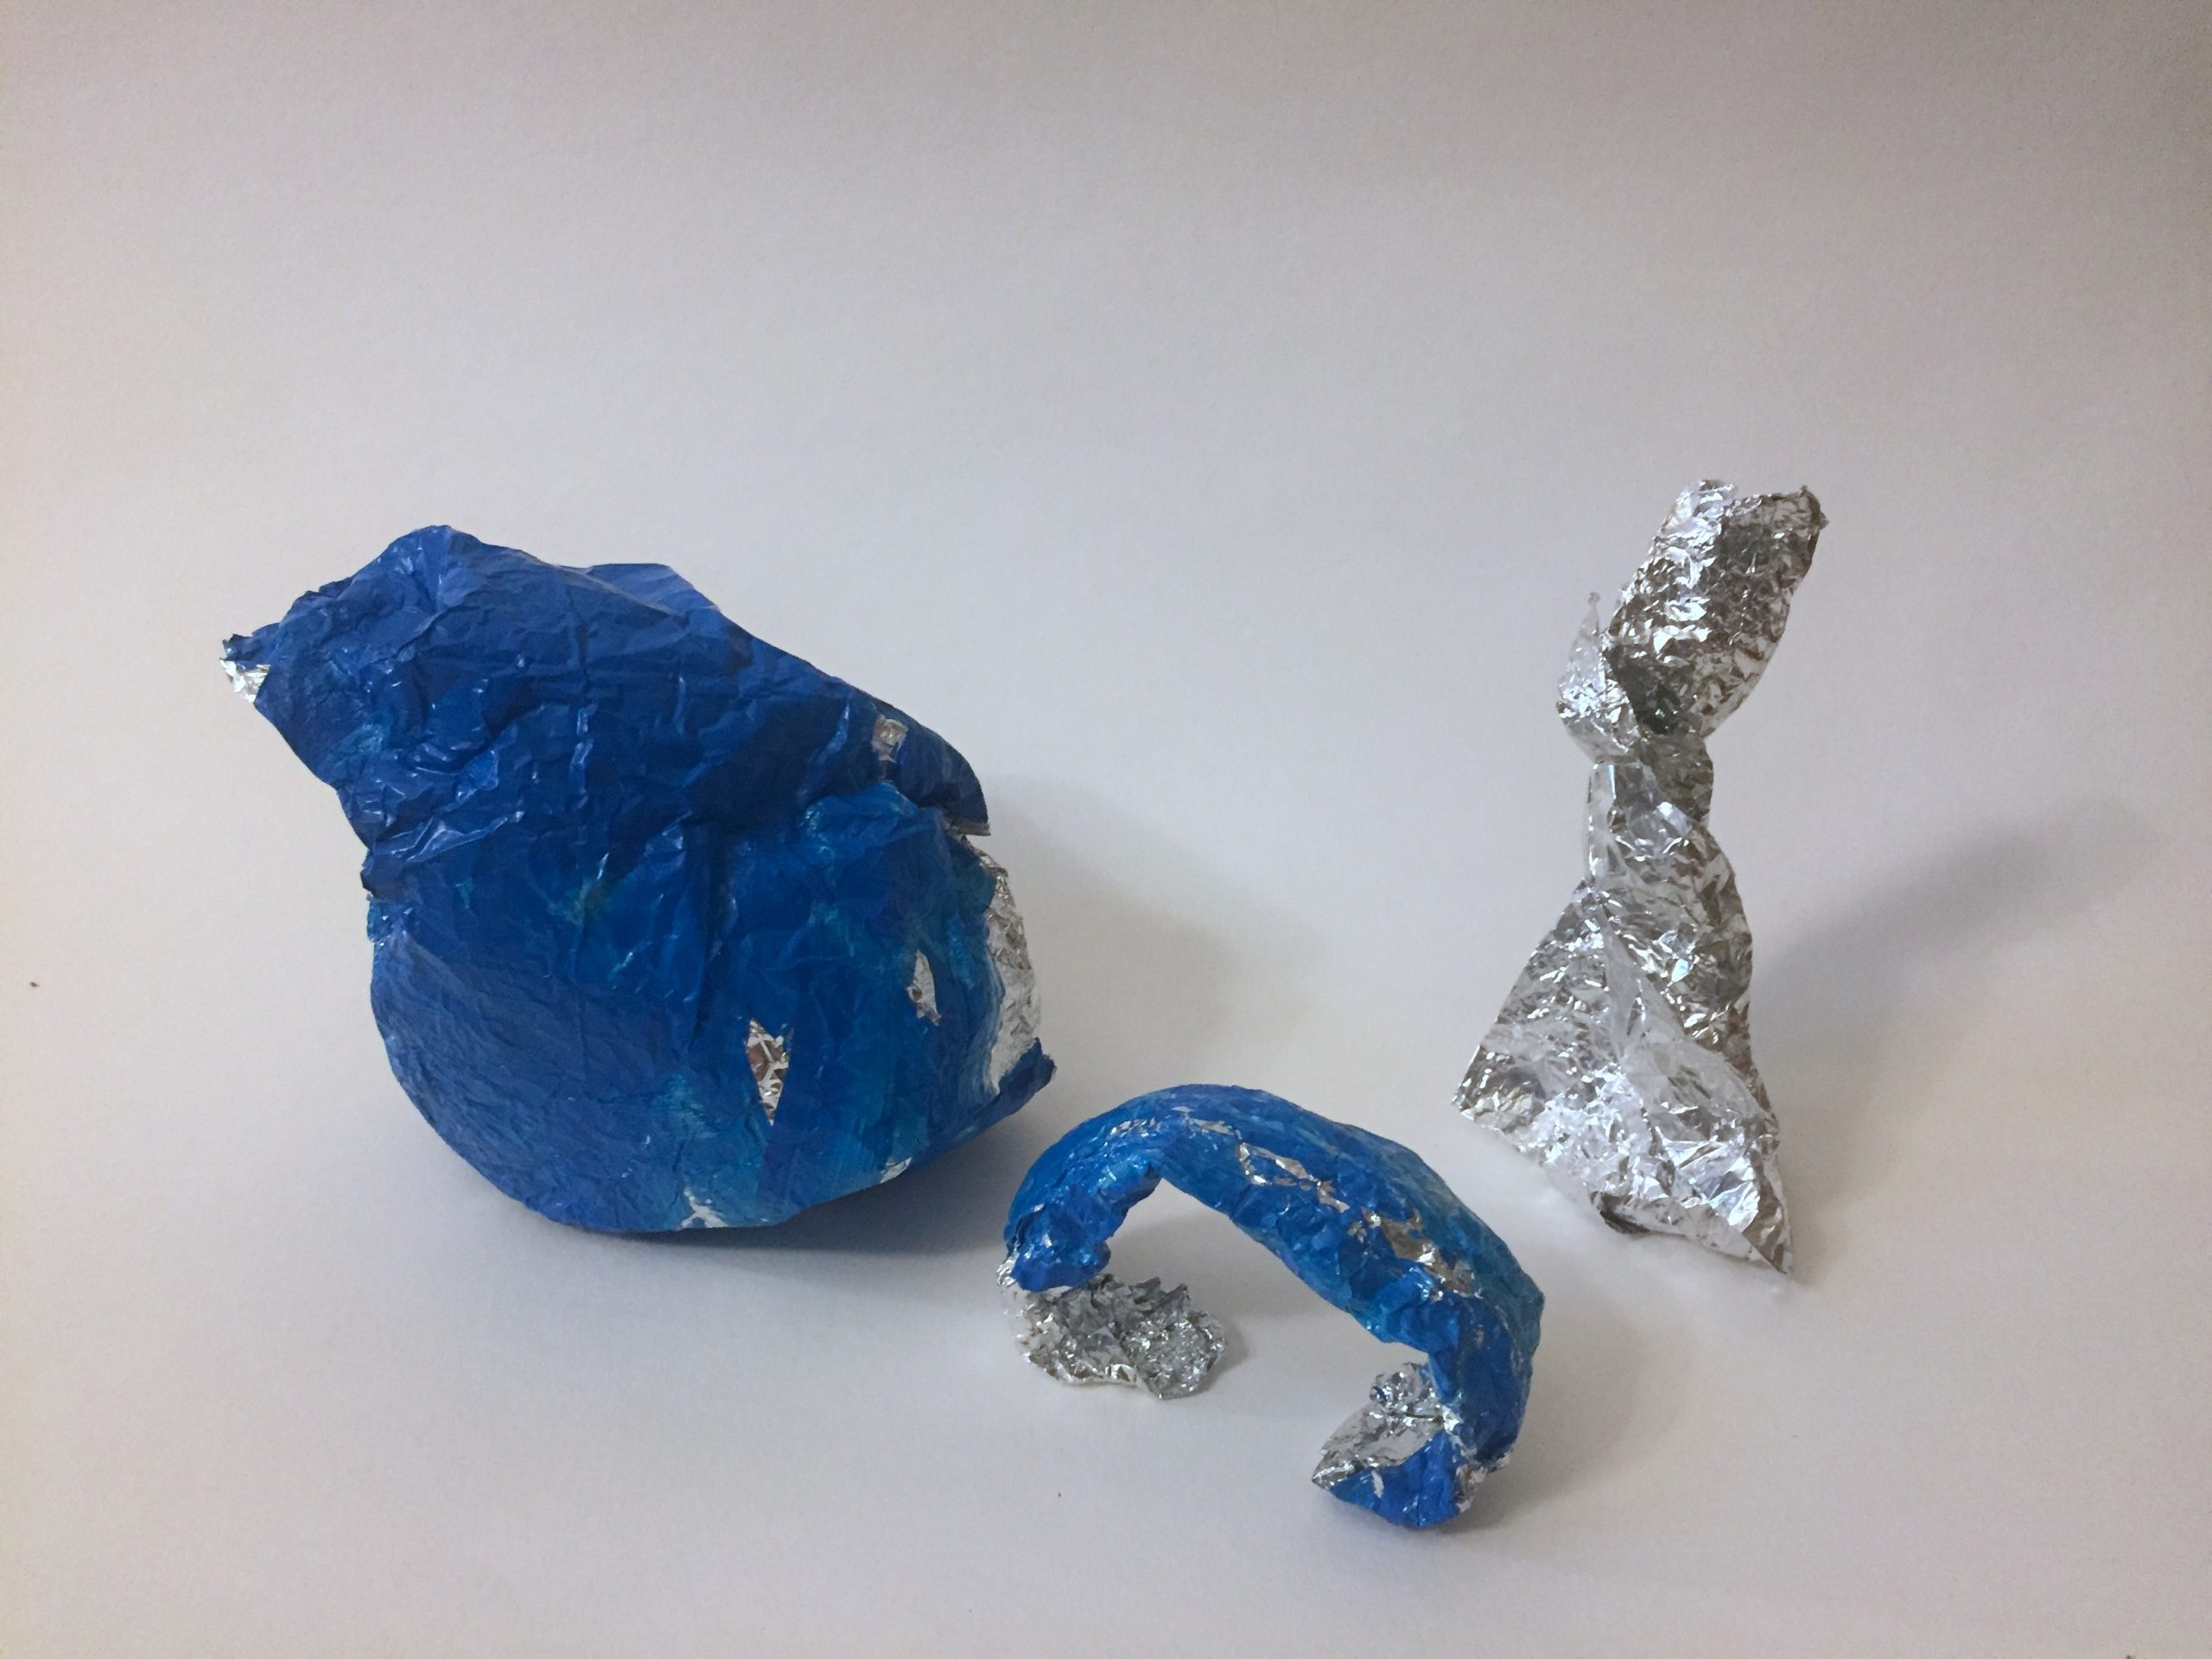 Three aluminum foil sculptures in a row. From left to right: a blue bird-like shape, a blue arch, and an unpainted triangle with a twisted top.